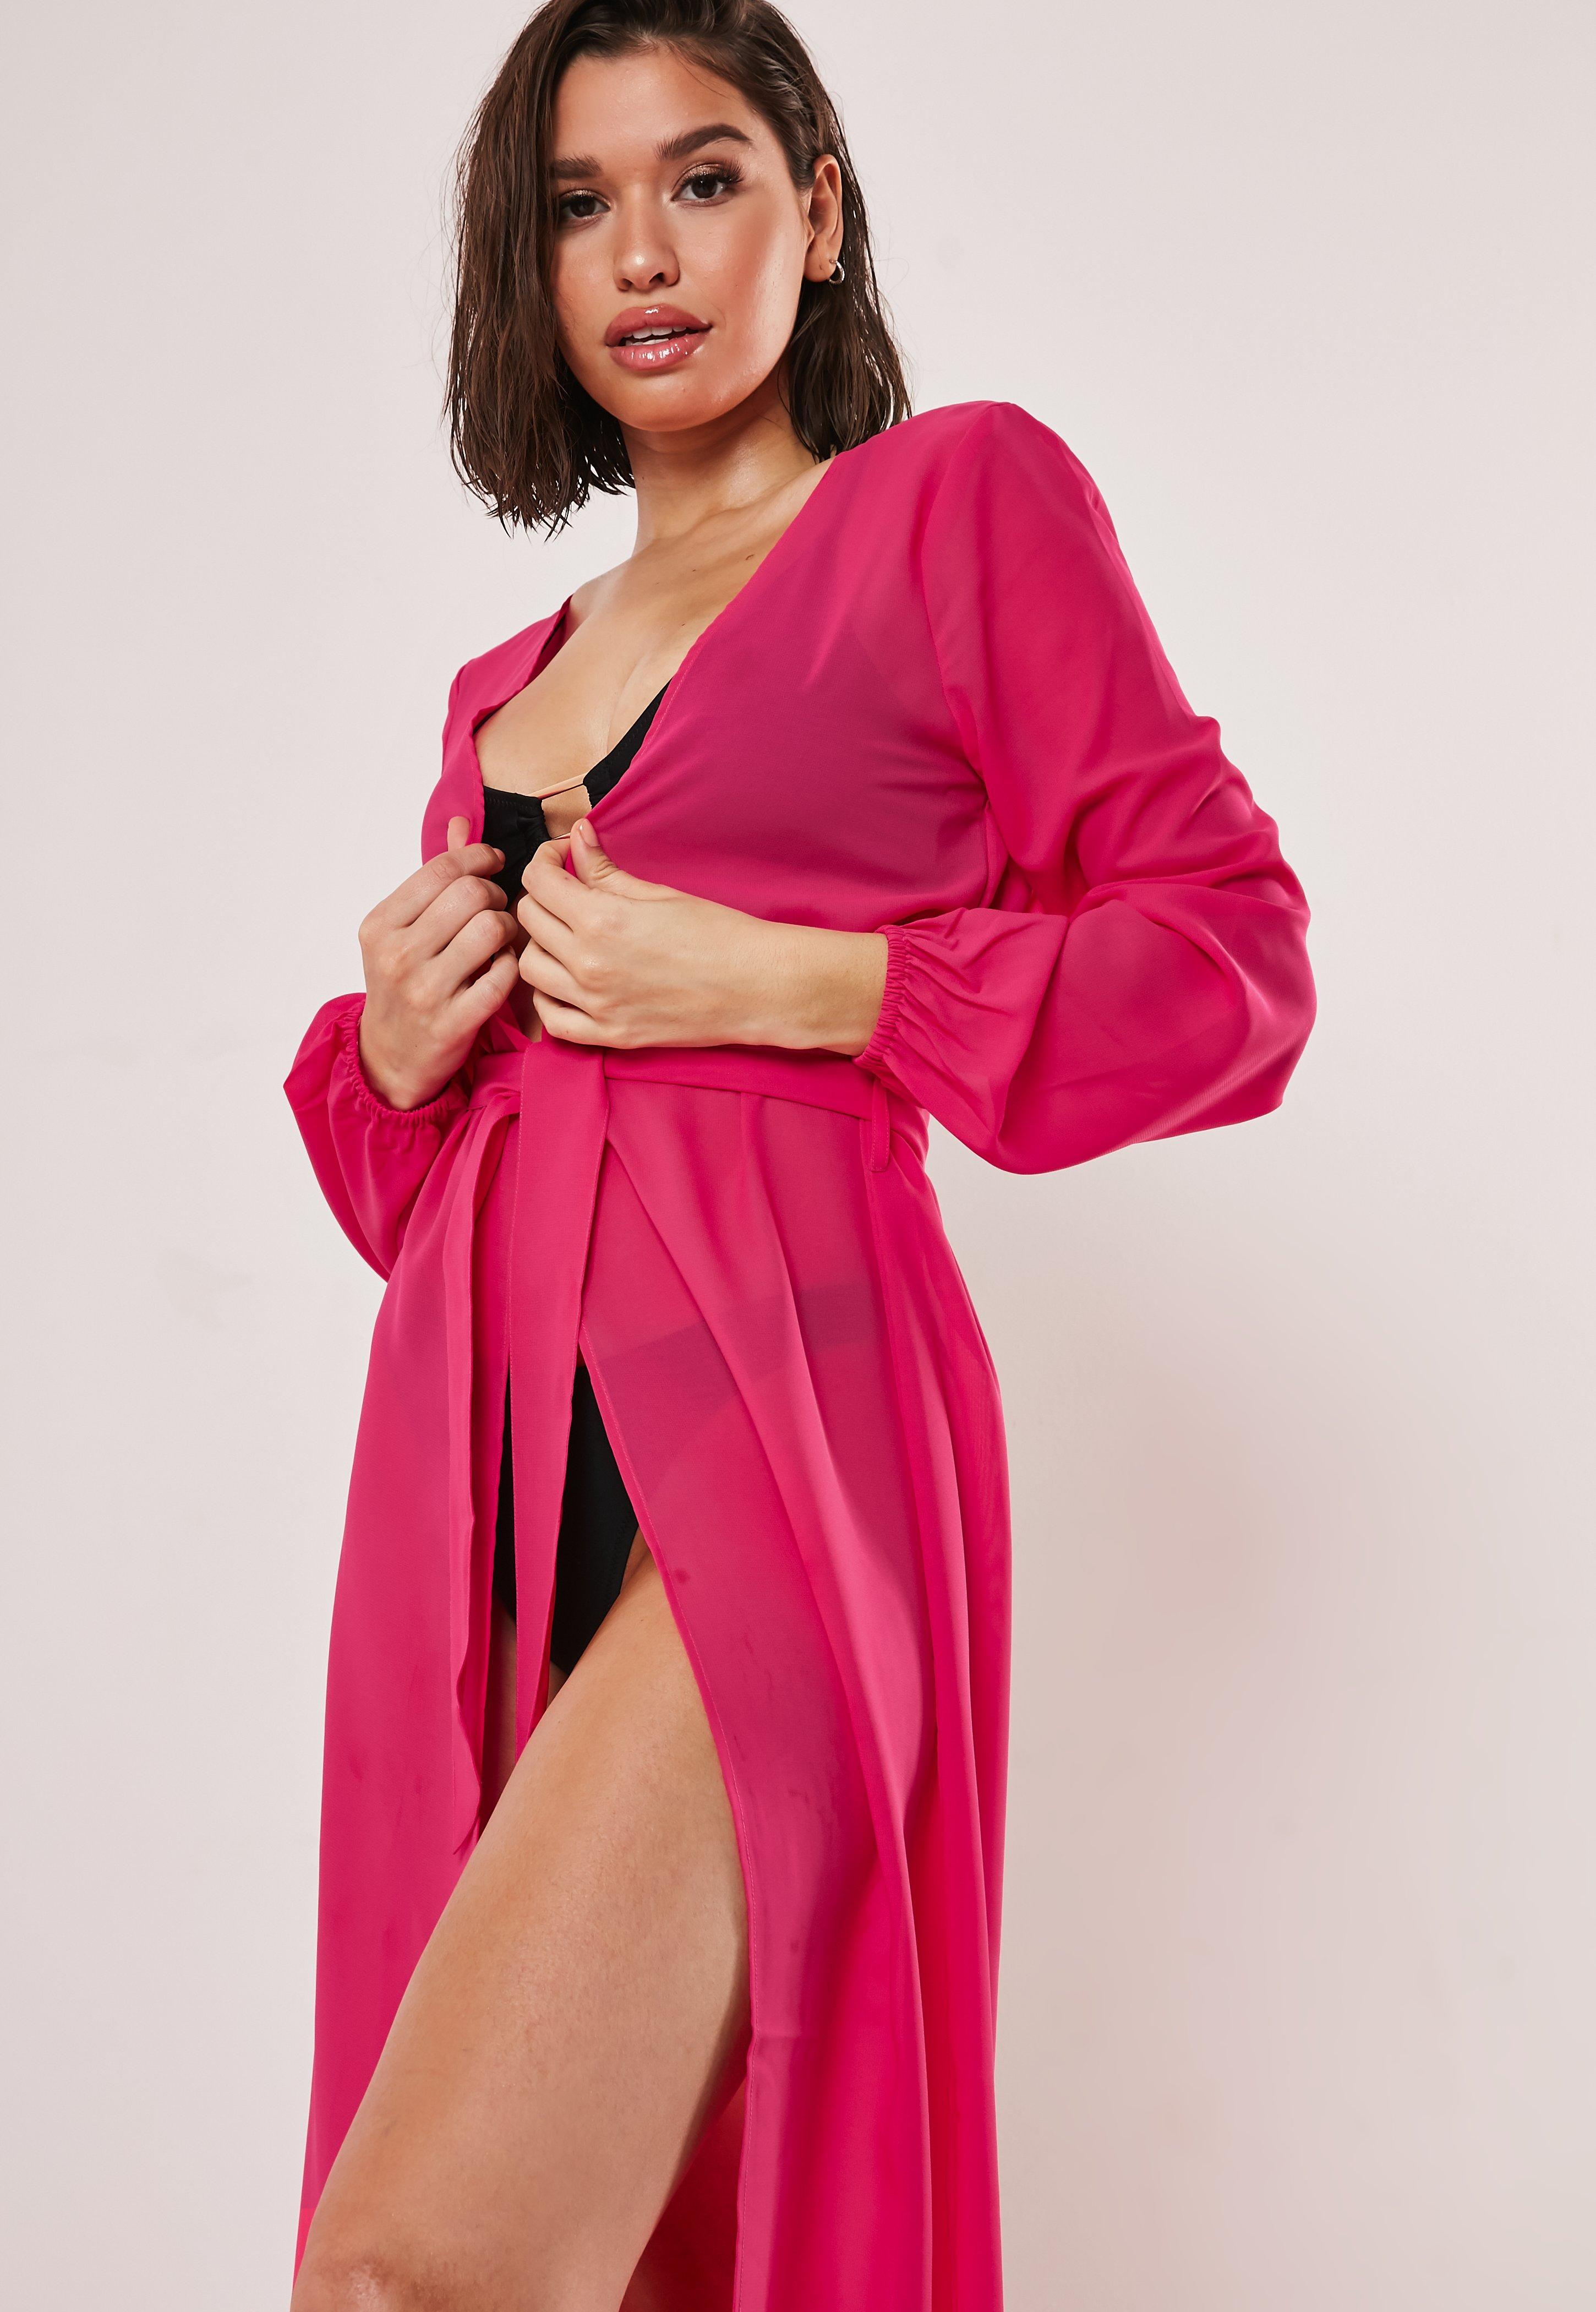 Neon Pink Chiffon Tie Waist Beach Cover Up Kimono by Missguided